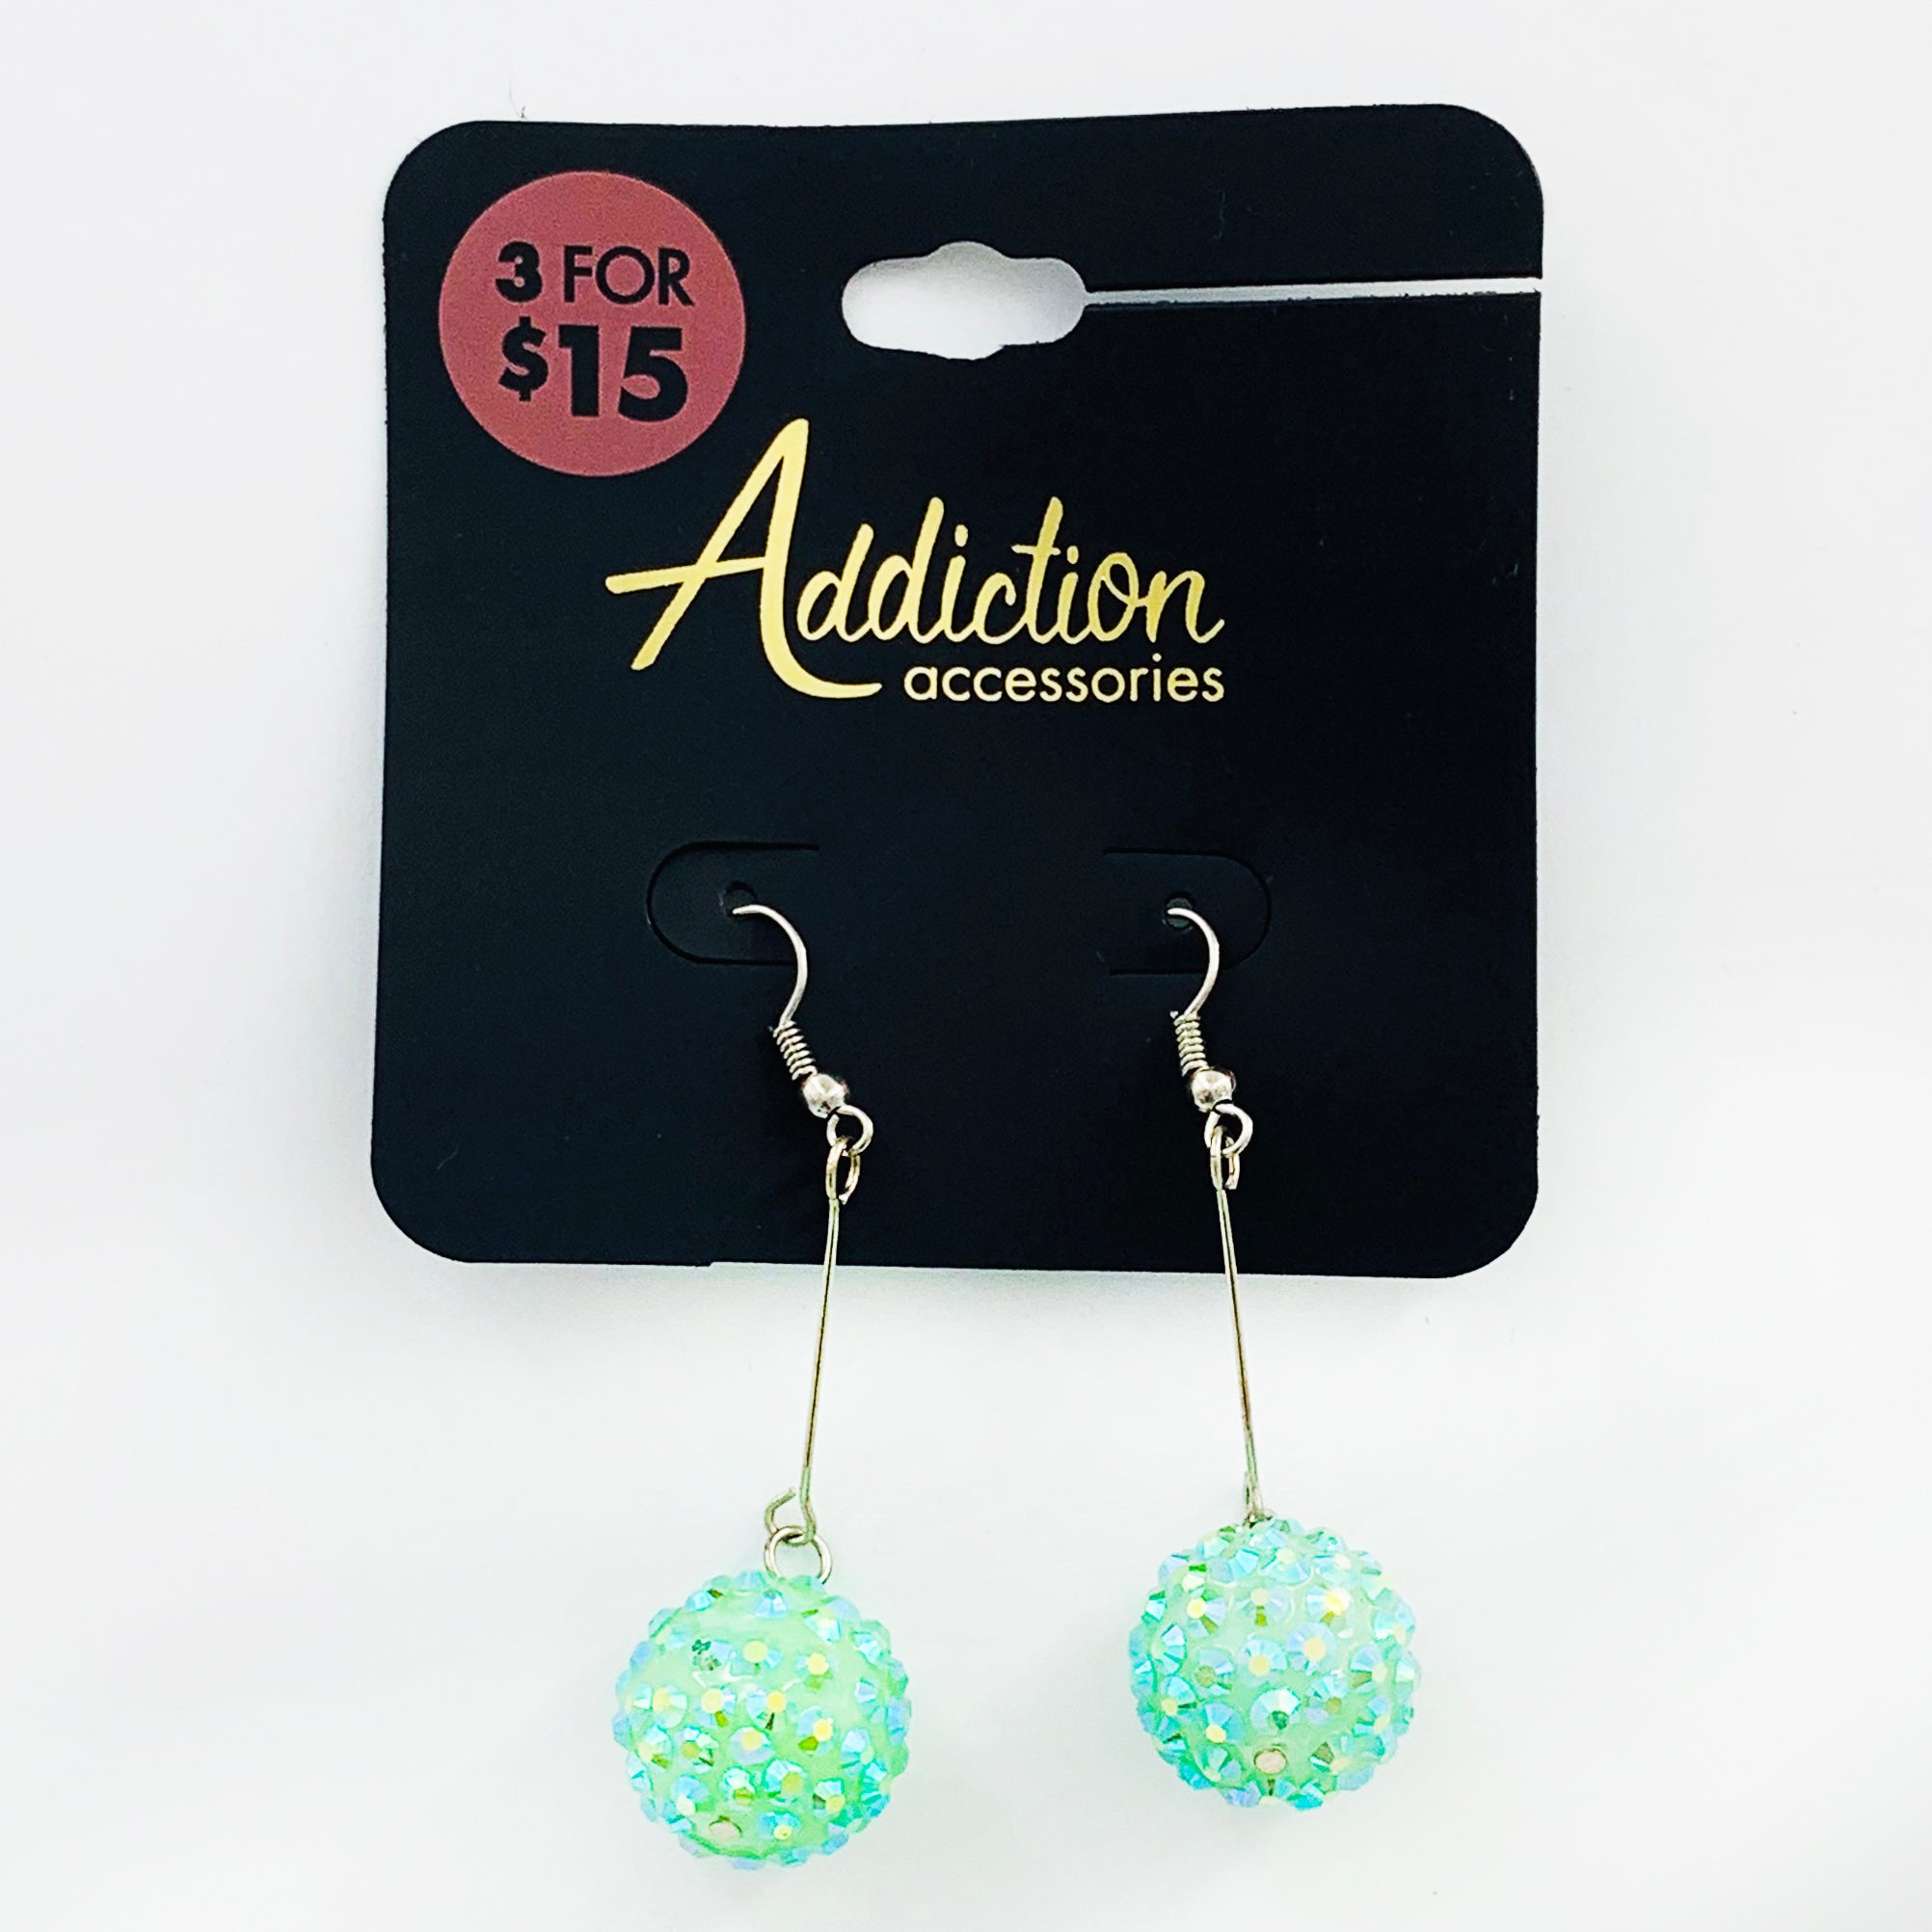 Sparkly turquoise ball earrings